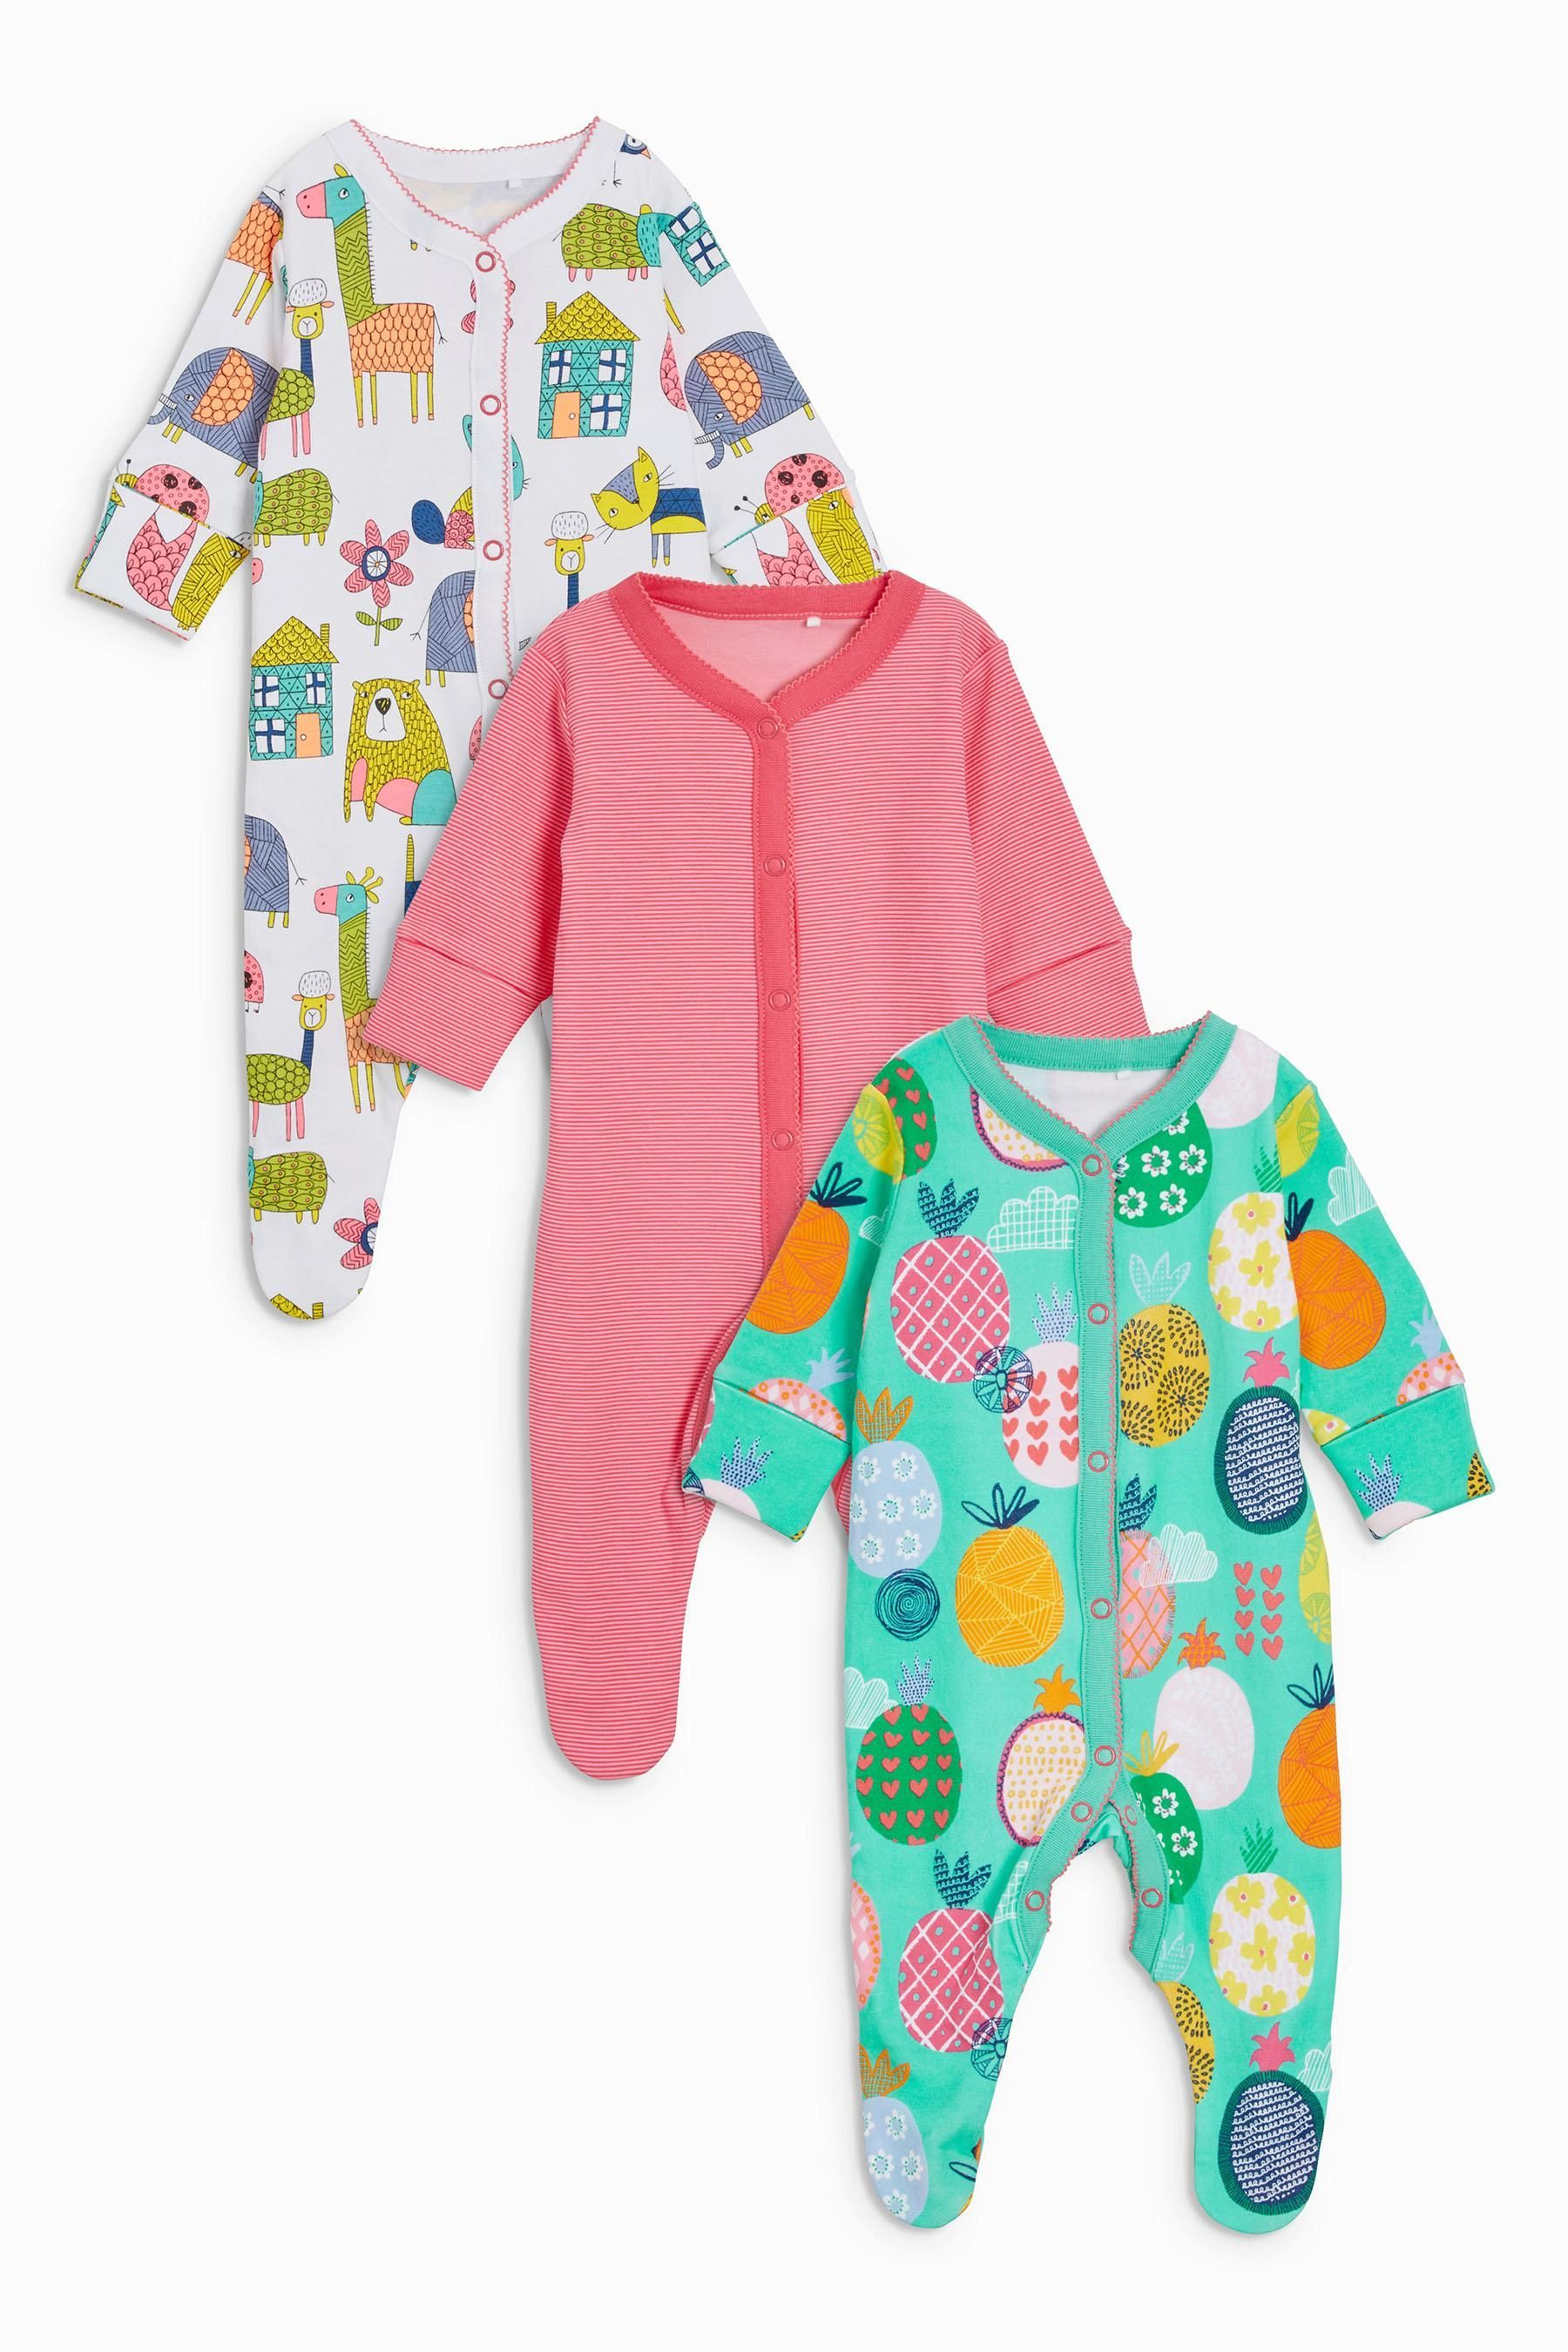 Dependable Newborn Baby Girls Babygrows Set Of 3 Last Style Clothing, Shoes & Accessories